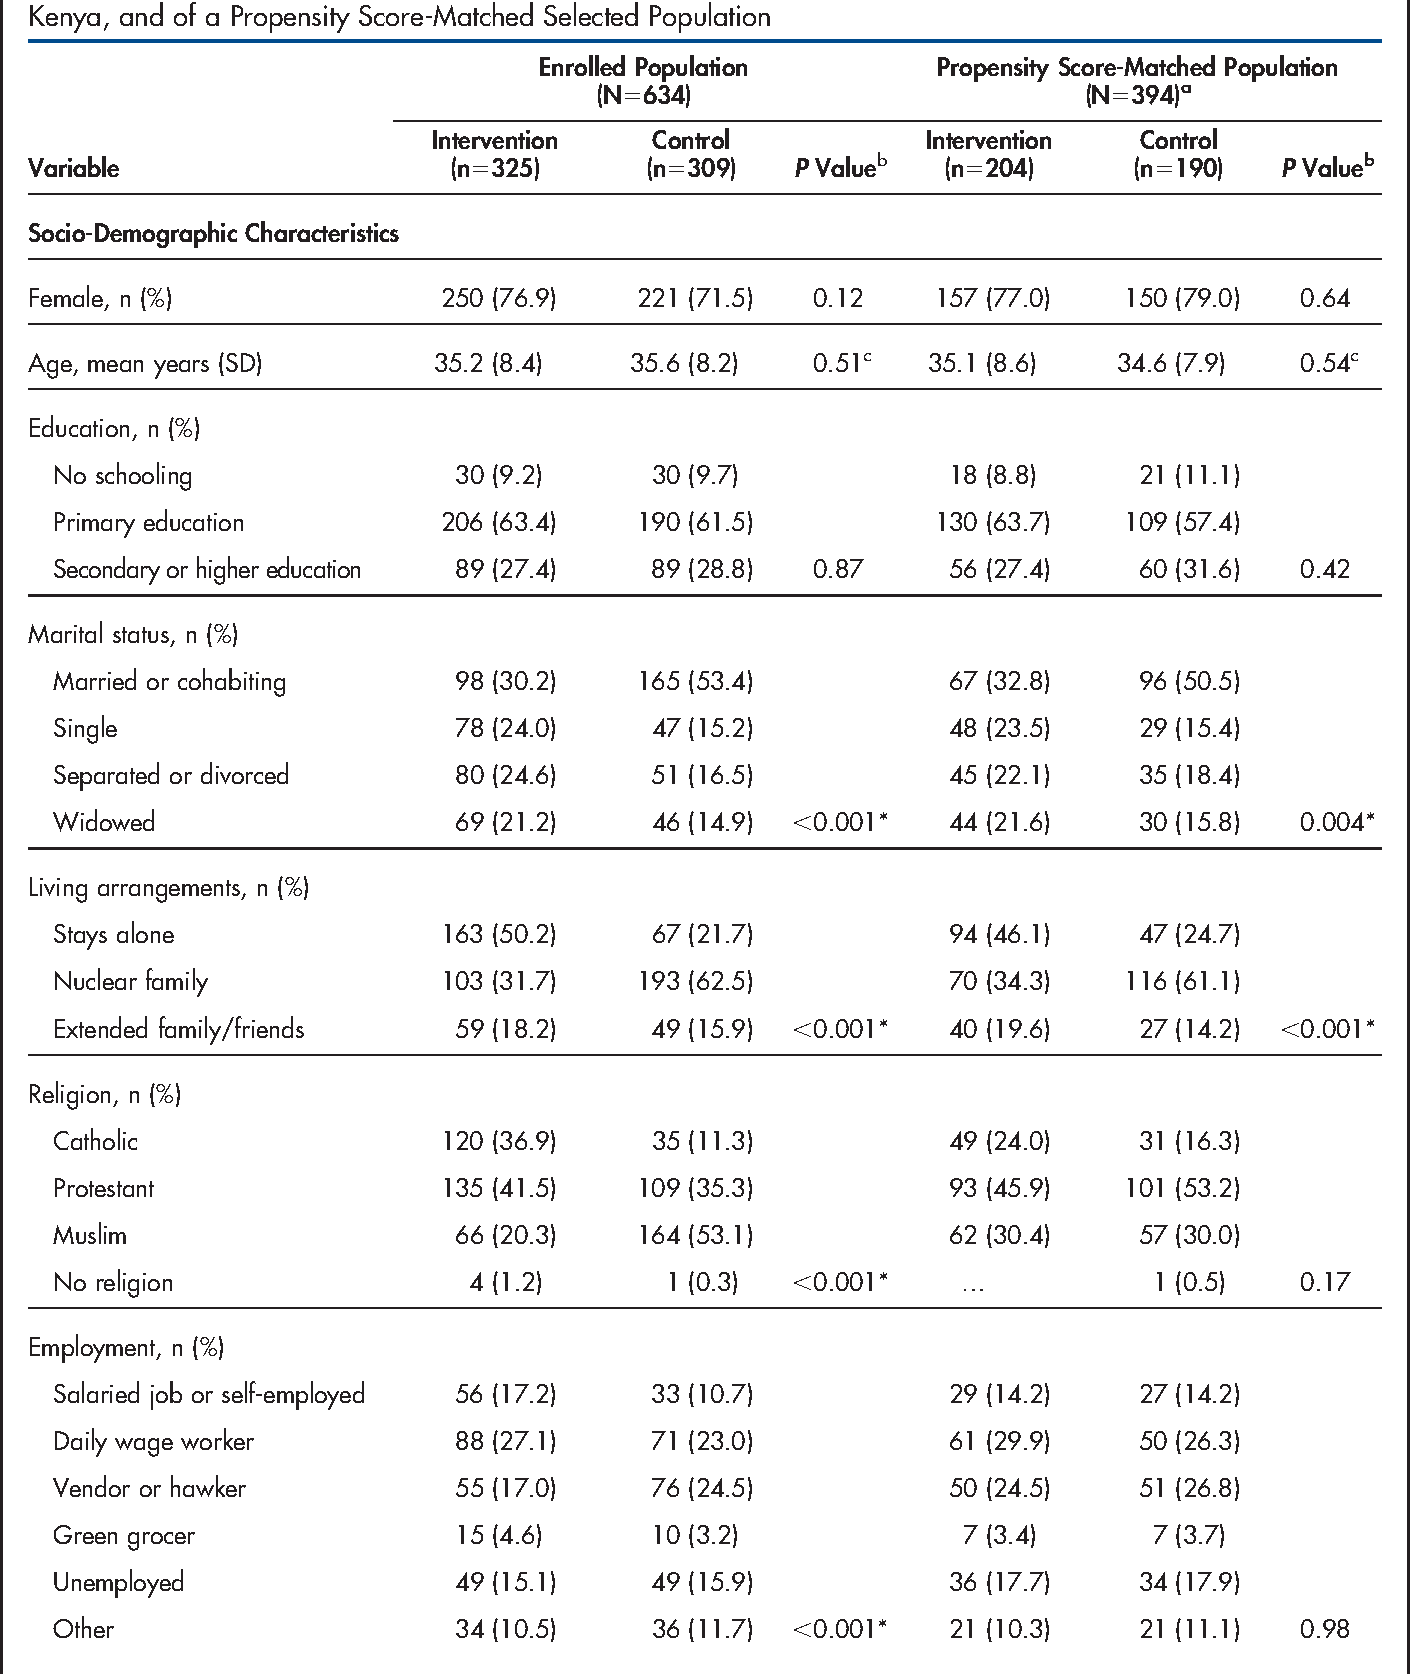 TABLE 1. Baseline Characteristics of HIV-Infected Adults Enrolled in Intervention and Control Sites in Mombasa, Kenya, and of a Propensity Score-Matched Selected Population